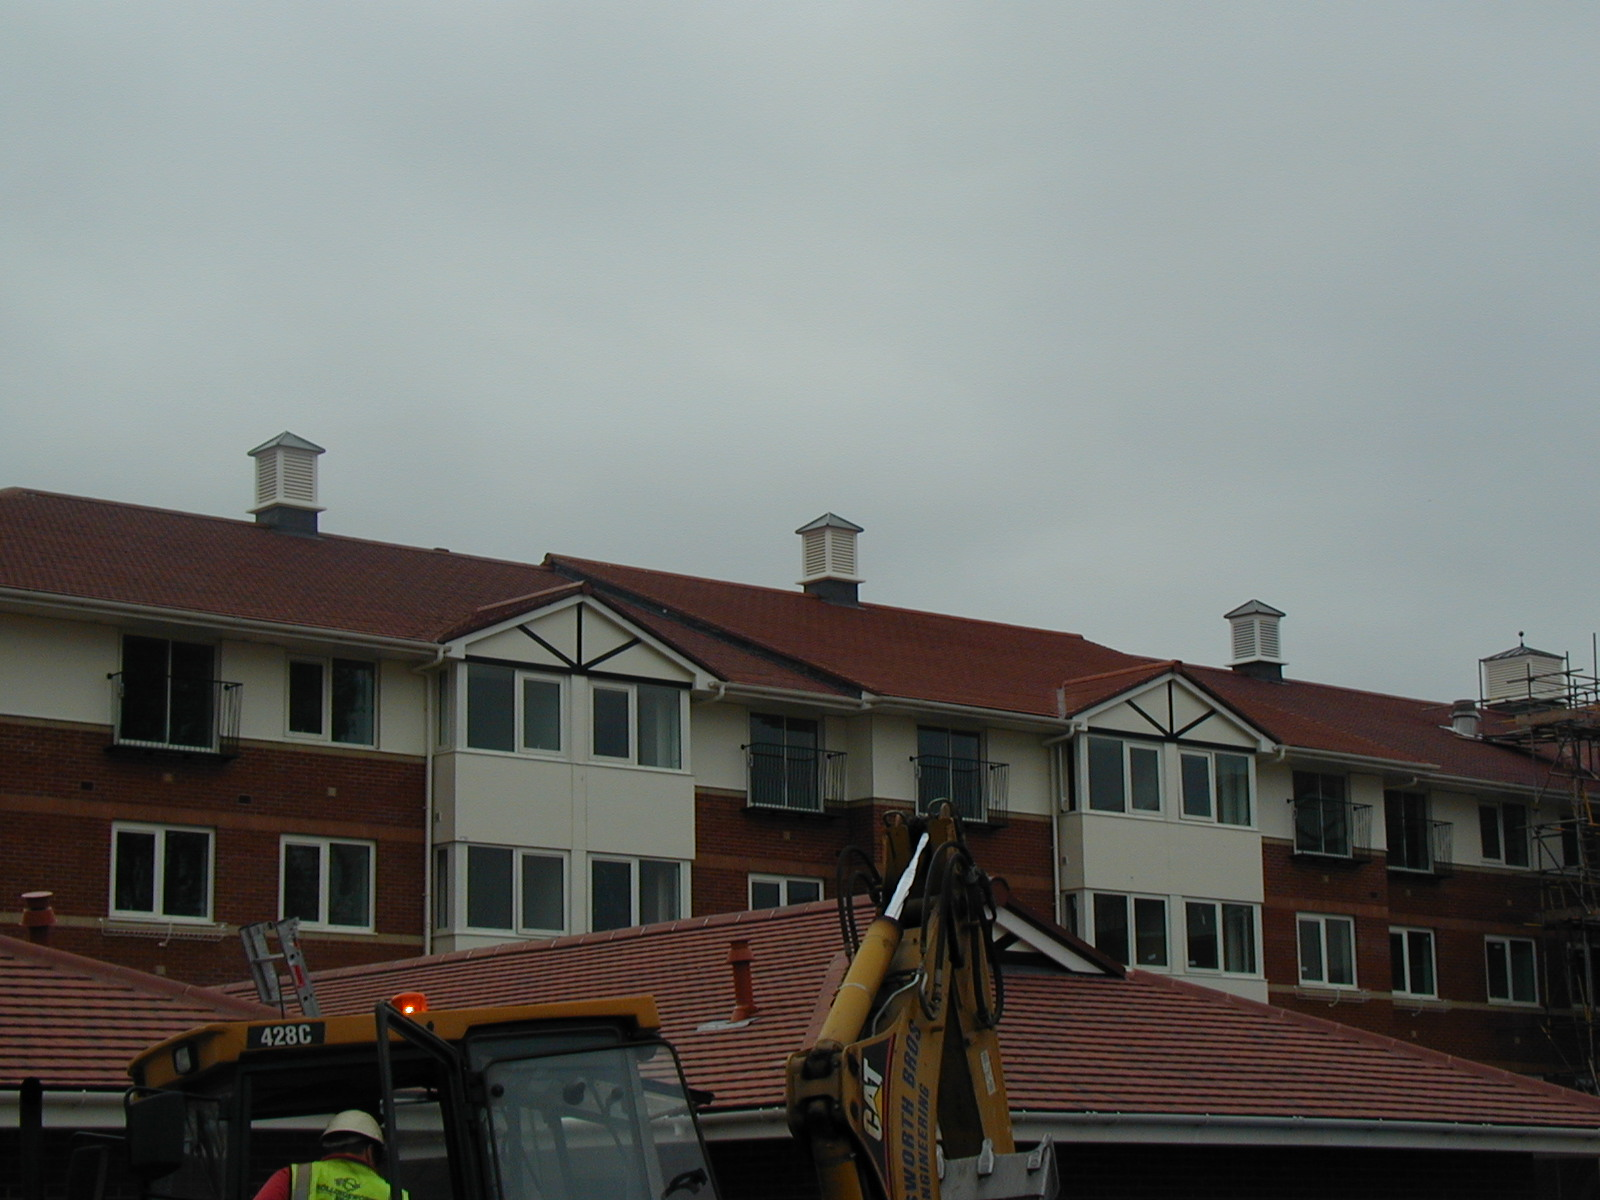 Roof turrets for housing